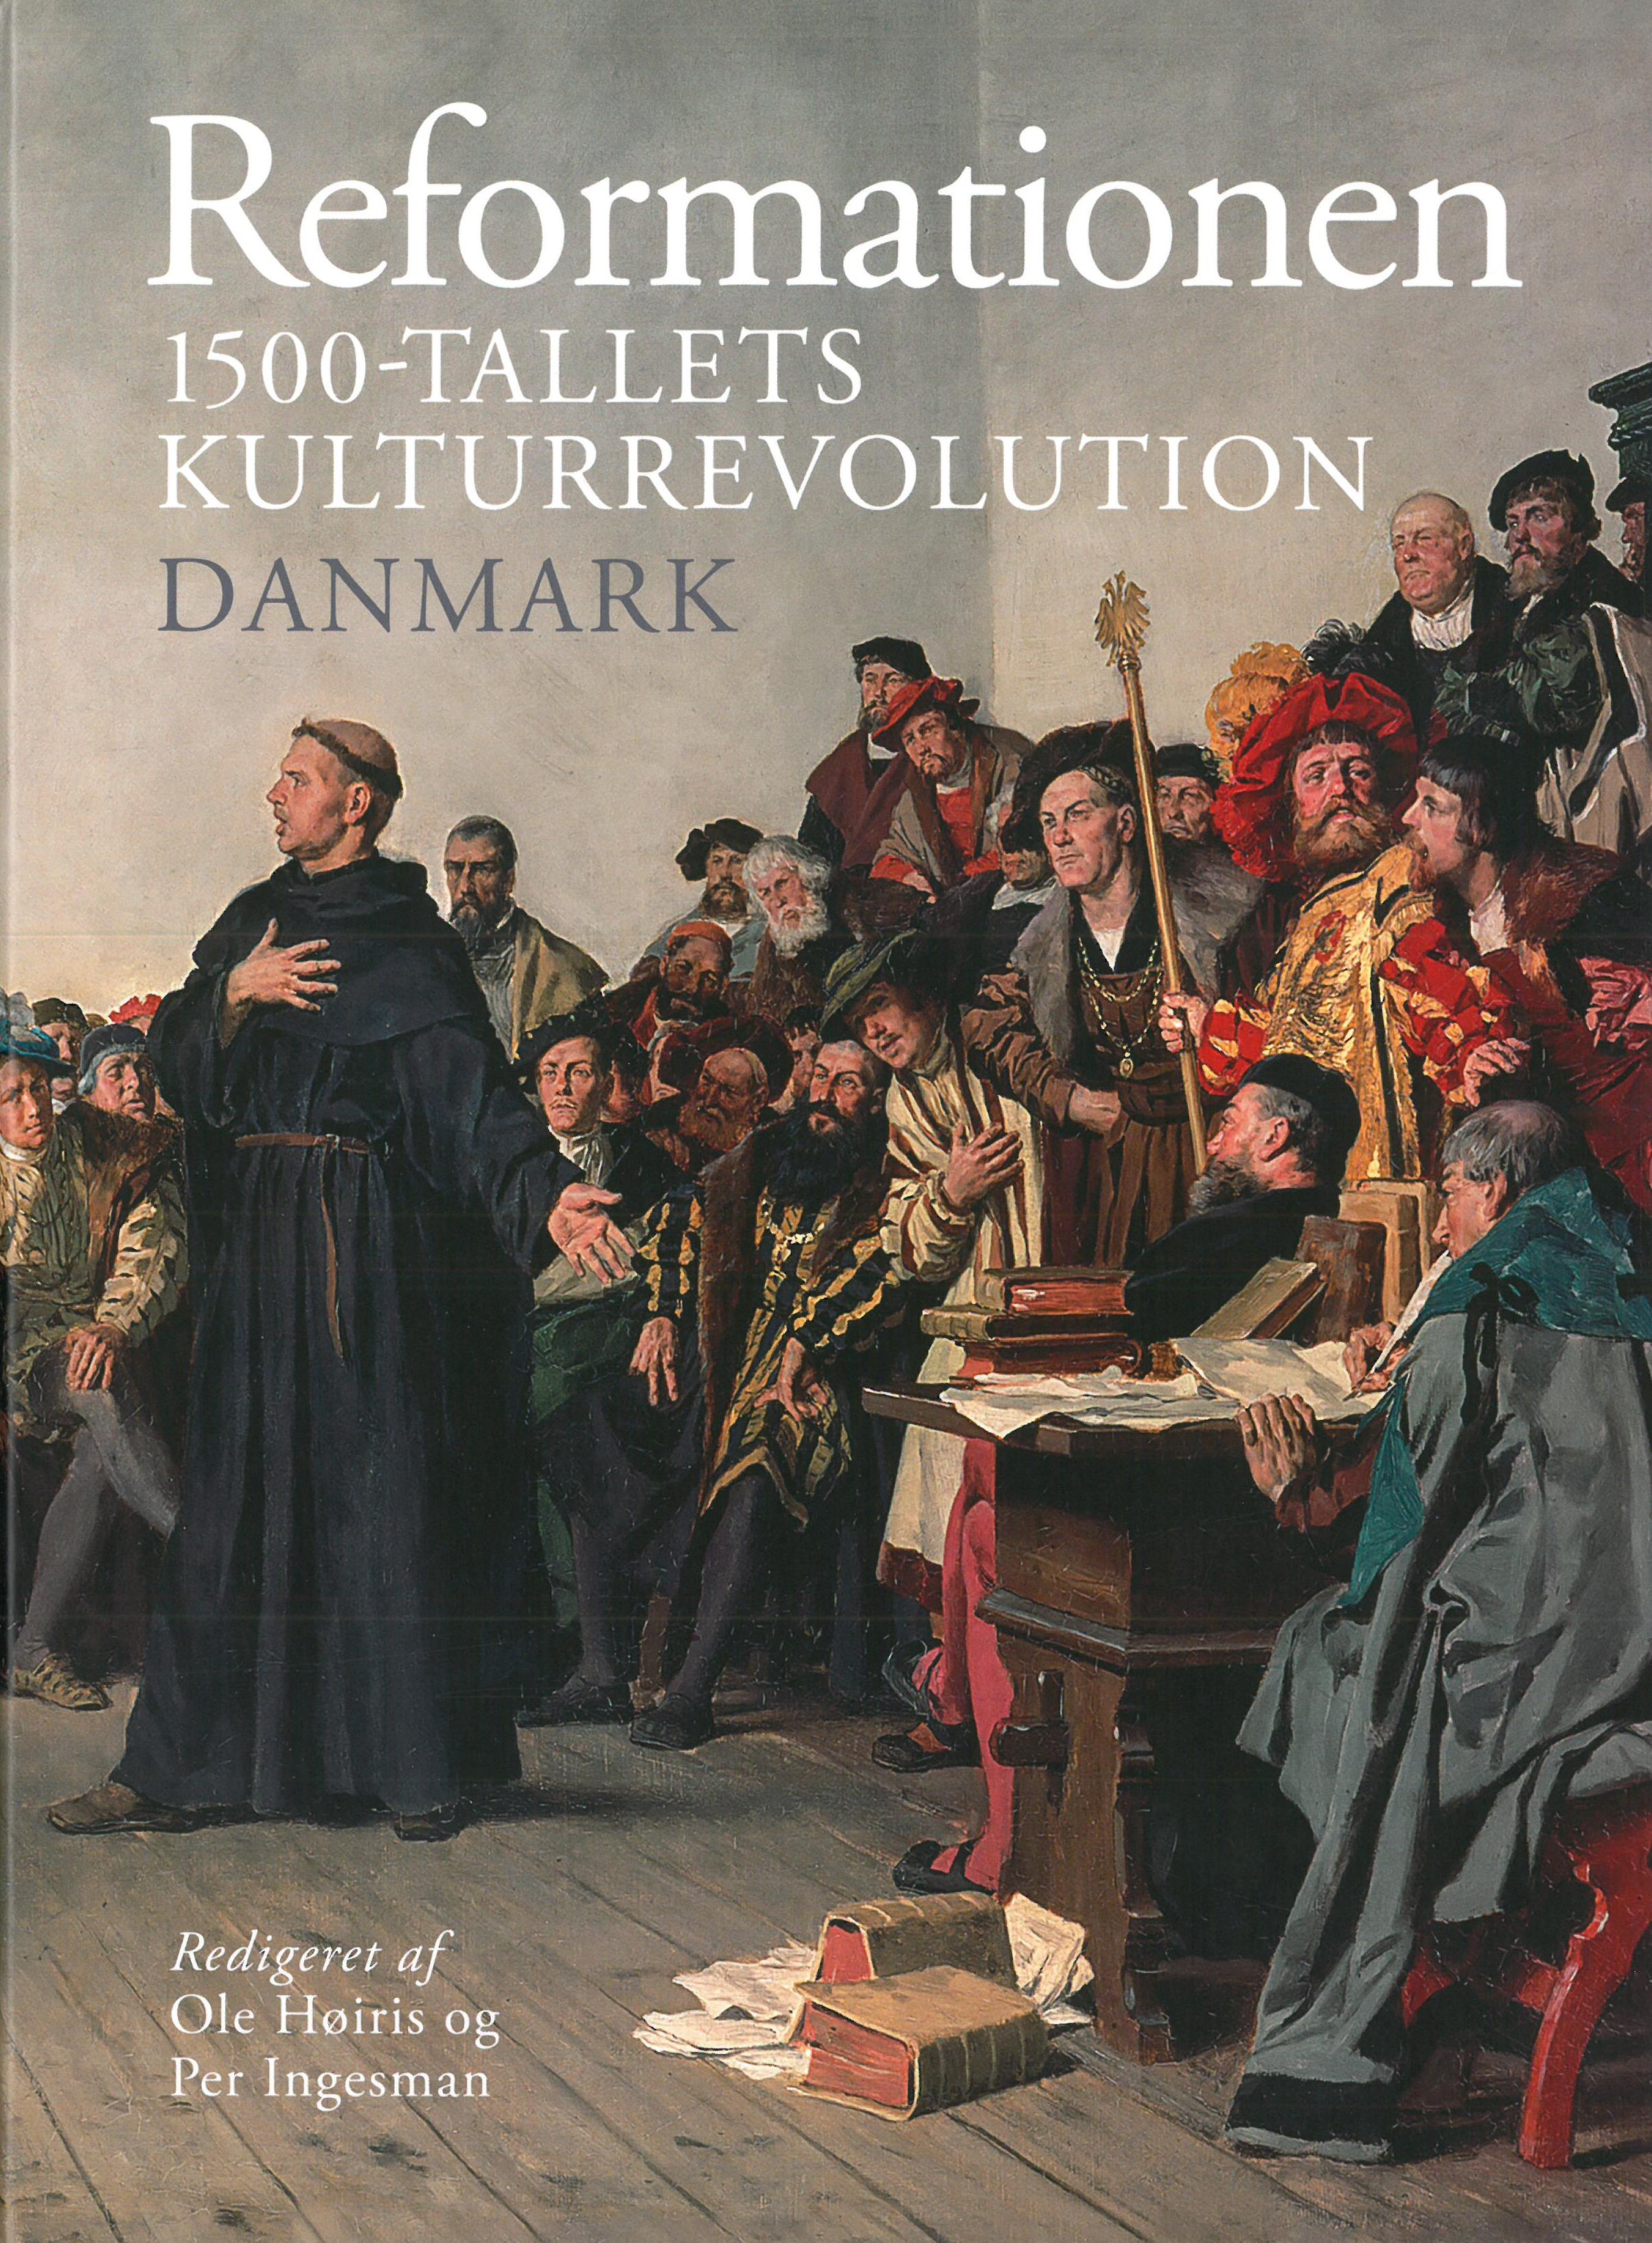 Reformationen kulturkamp